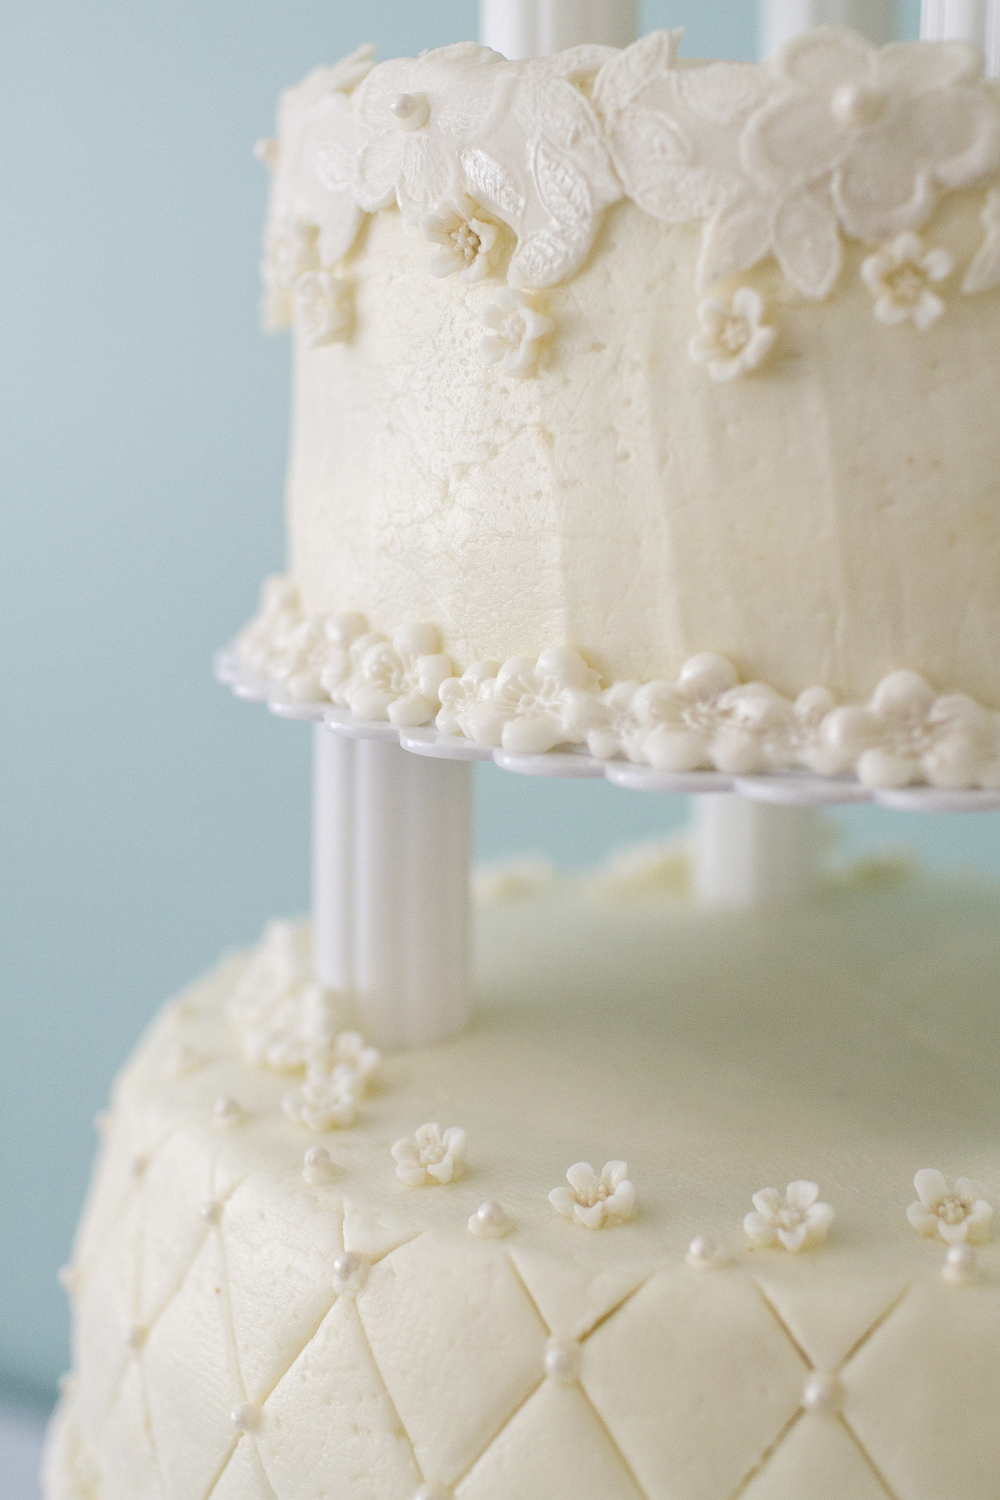 Let's eat cake, Shannan & Ian get married  #fishyfoto